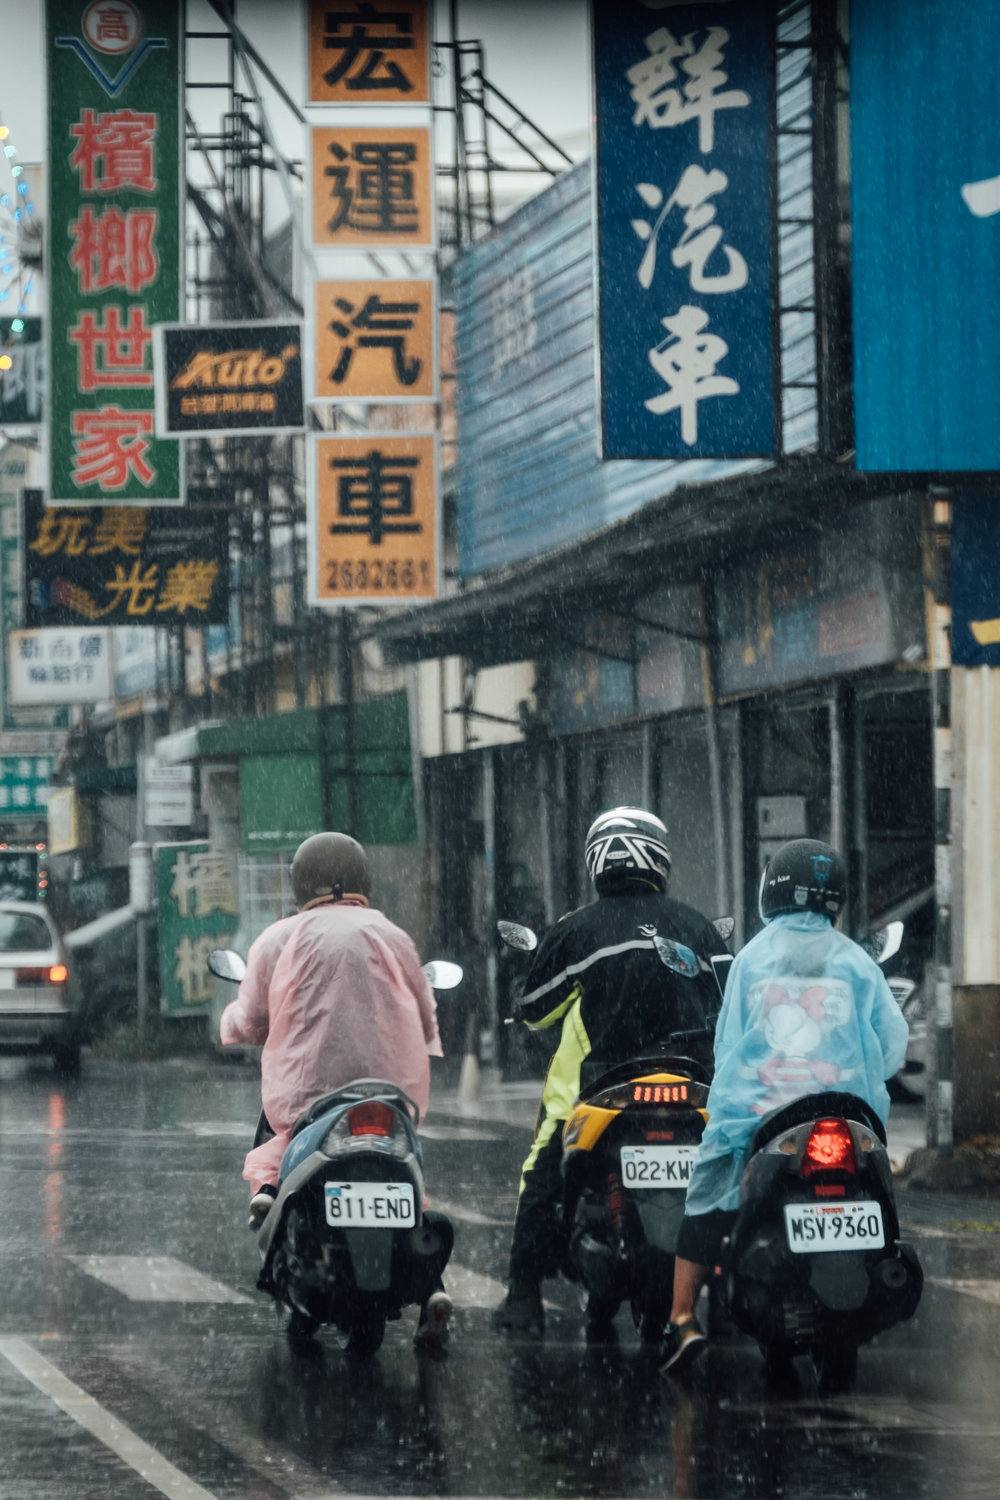 - Rain poncho + scooters are common sight on a rainy day